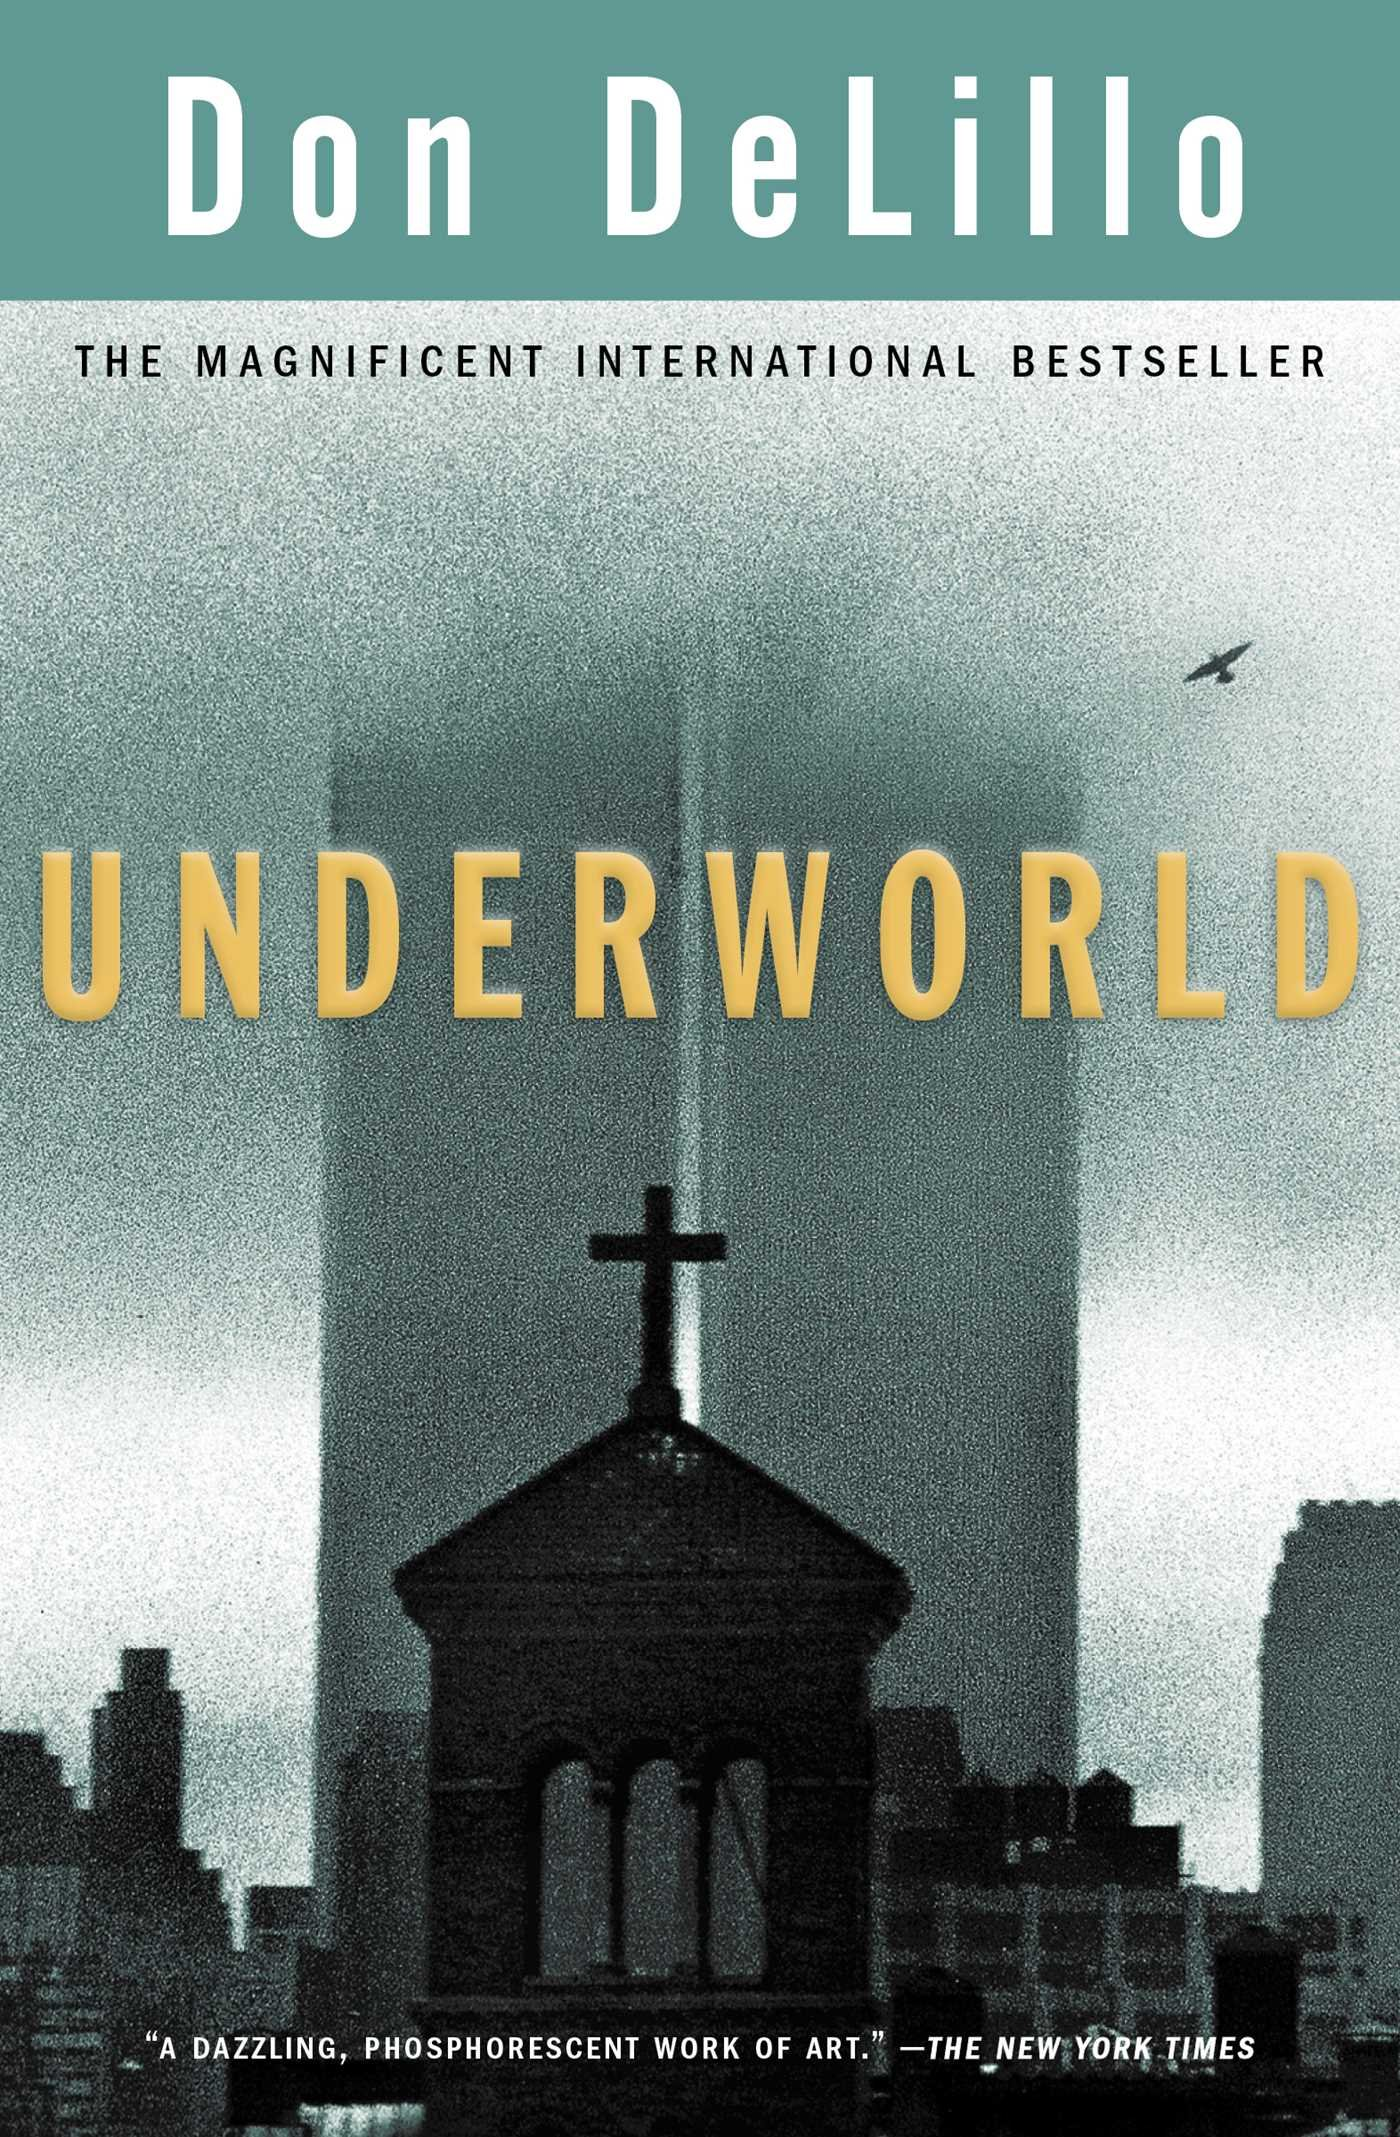 Underworld ISBN-13 9780684848150